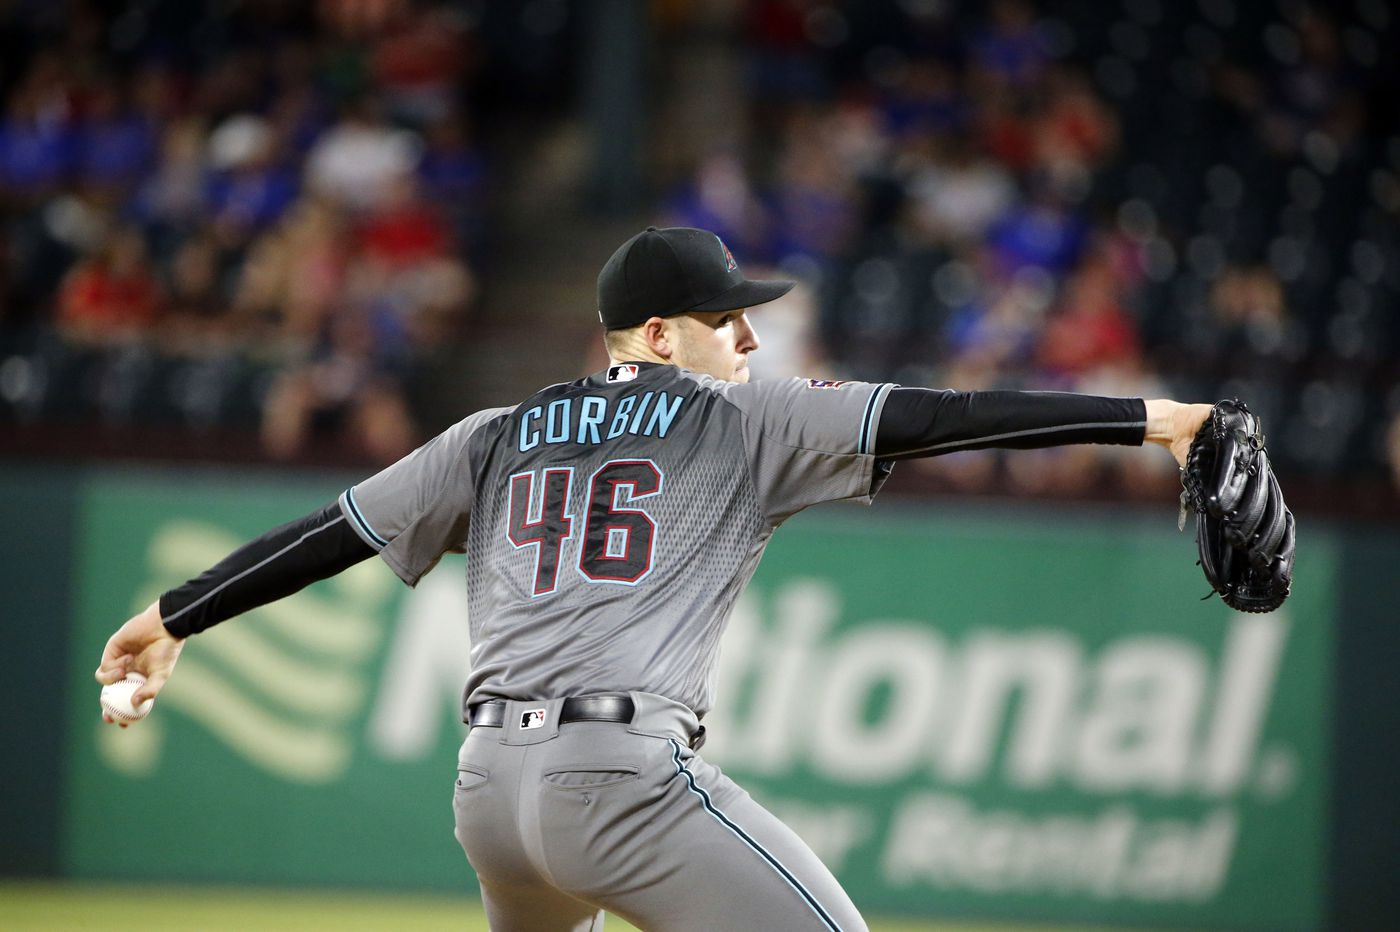 The Phillies may need to outbid the Yankees for Patrick Corbin. By how much?   David Murphy